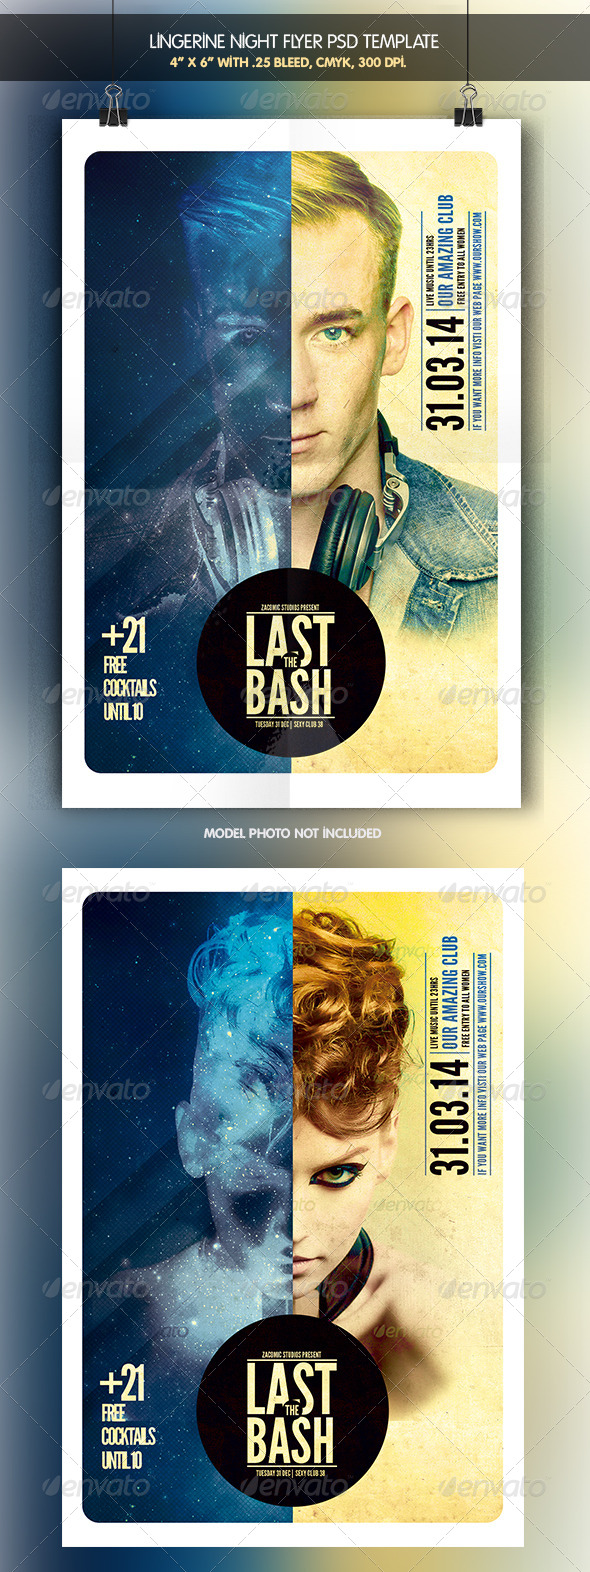 Last Bash Flyer Template